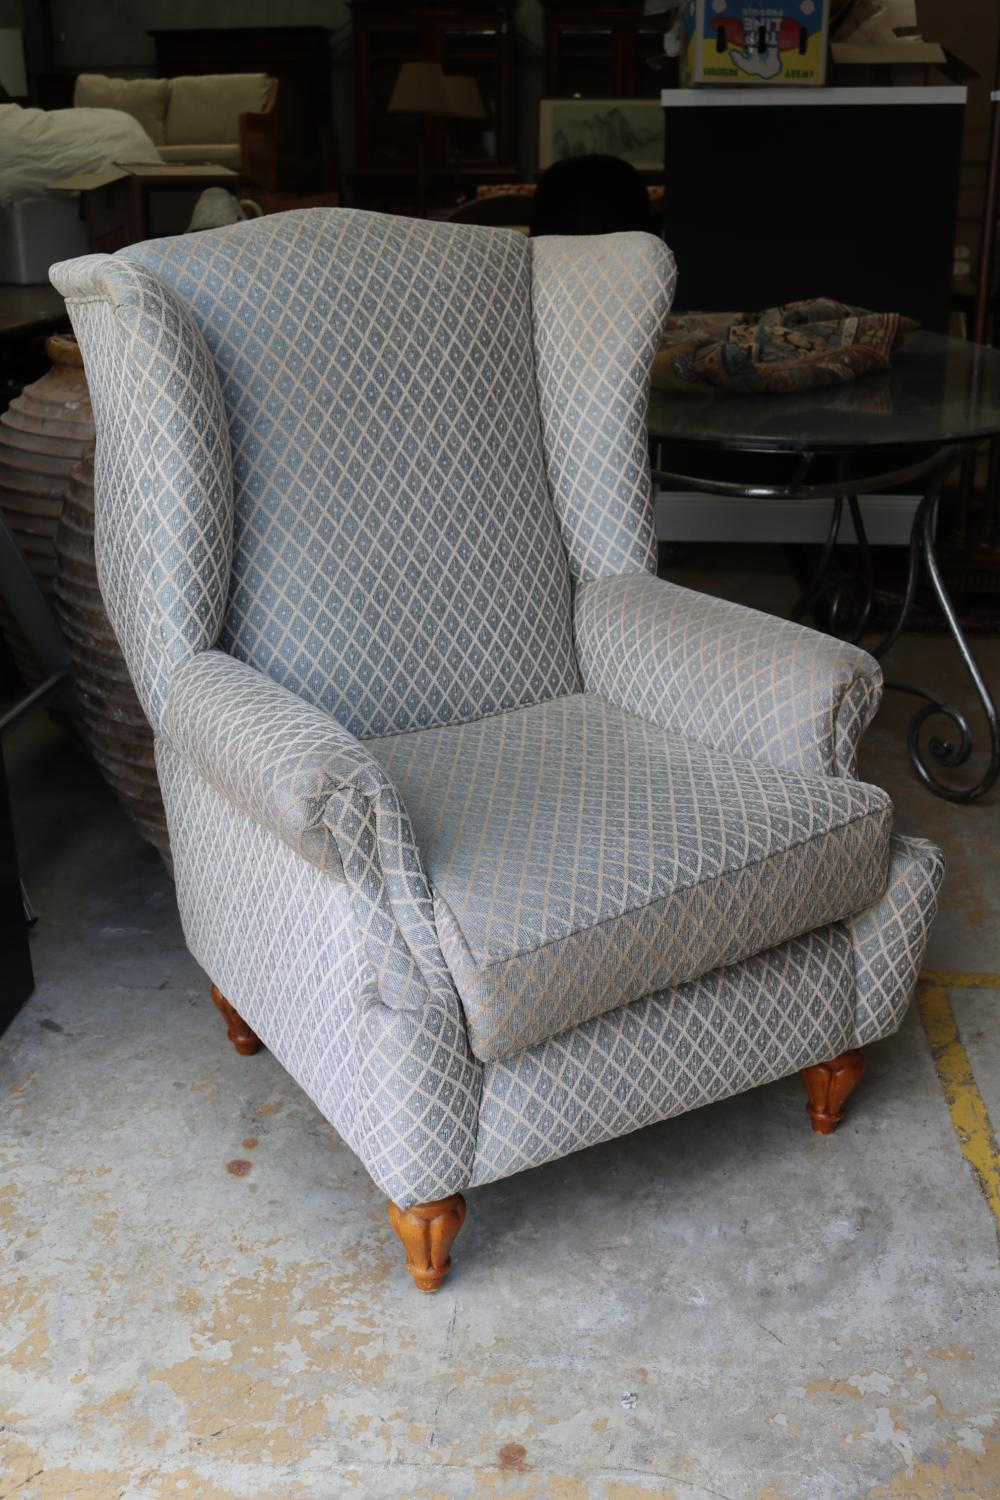 Modern upholstered wing back armchair, approx 104cm H x 78cm W